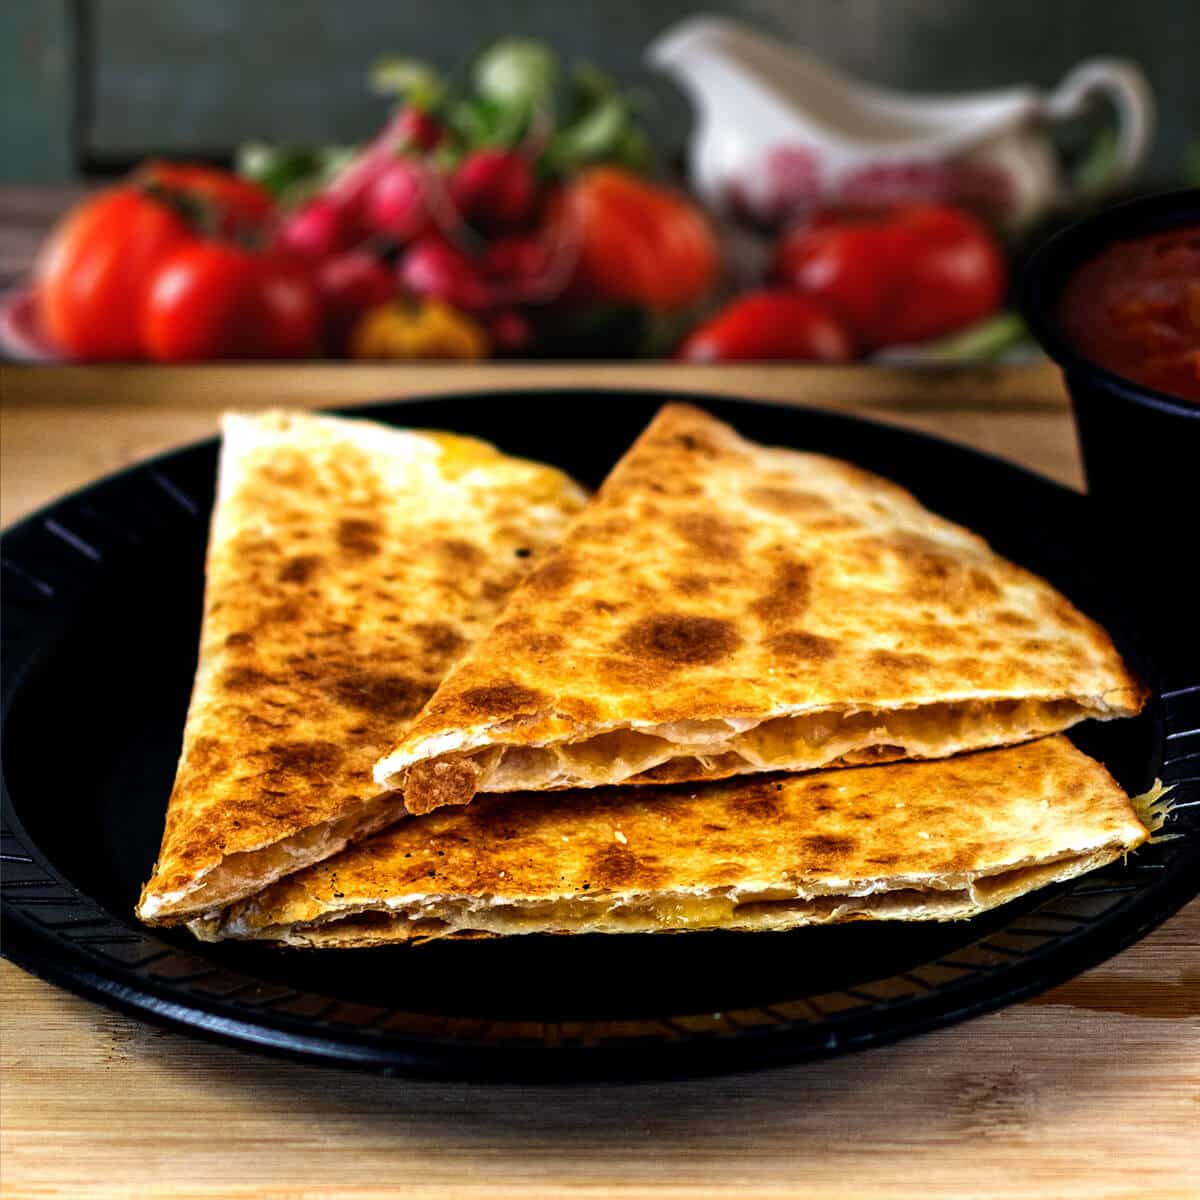 Cheese quesadillas with salsa